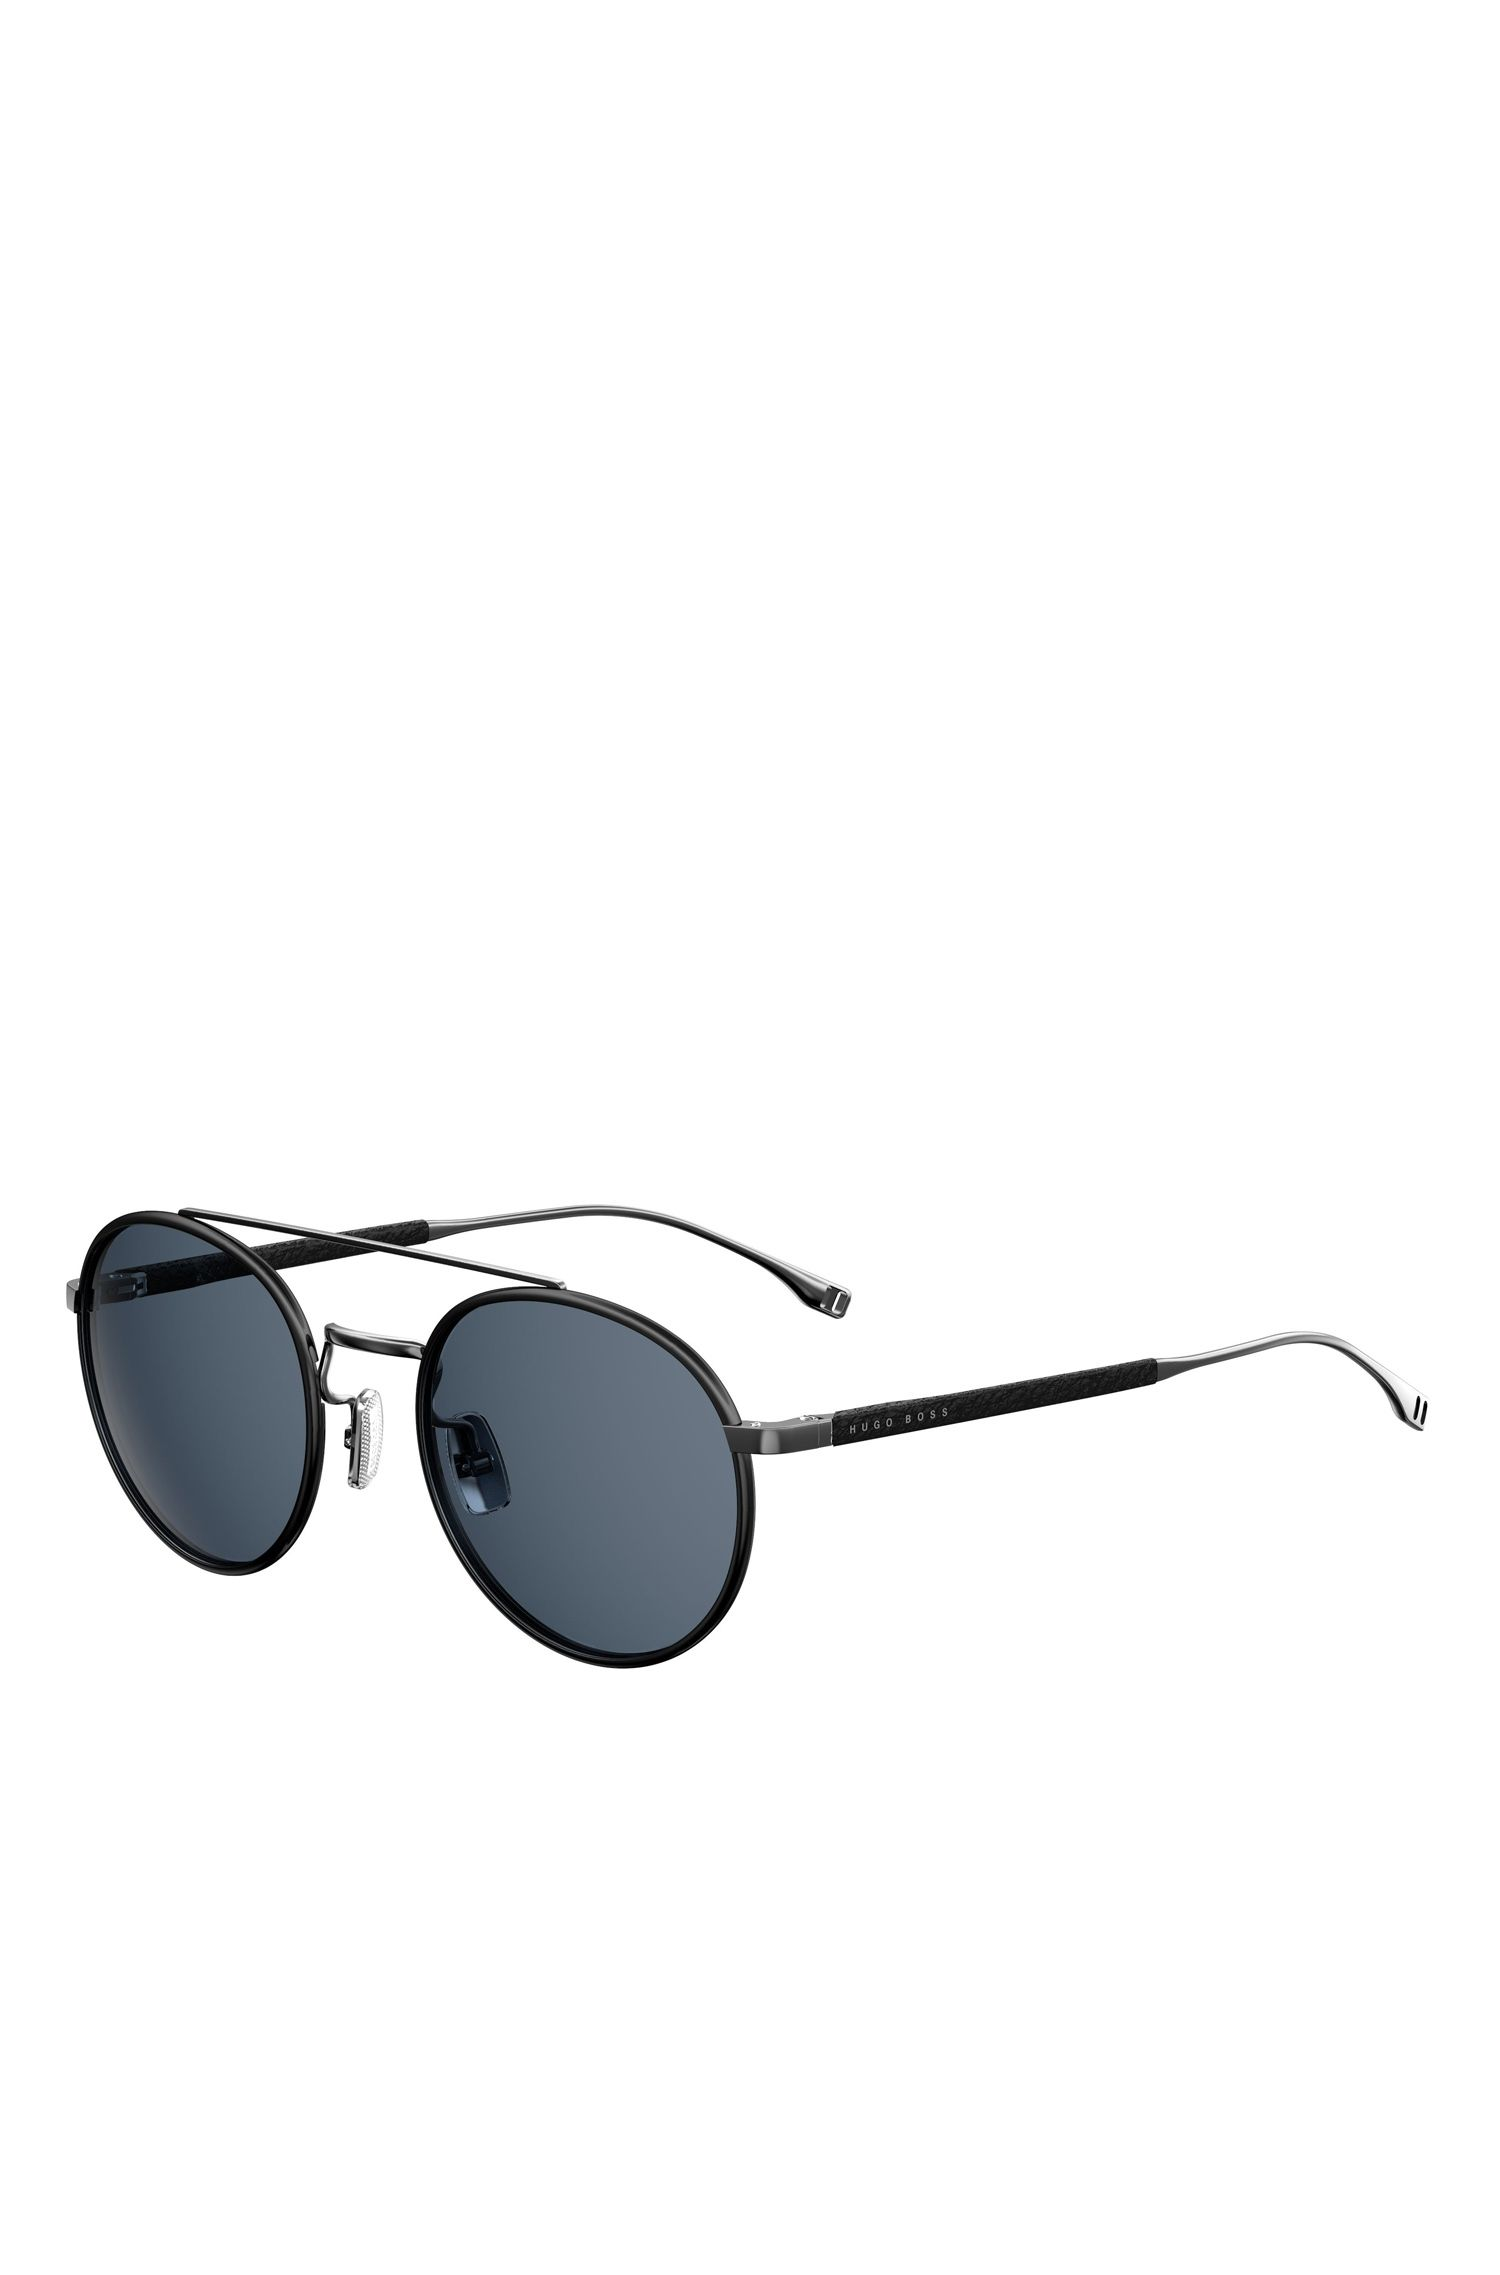 'BOSS 0886S' | Black Lens Round Leather Wrapped Sunglasses